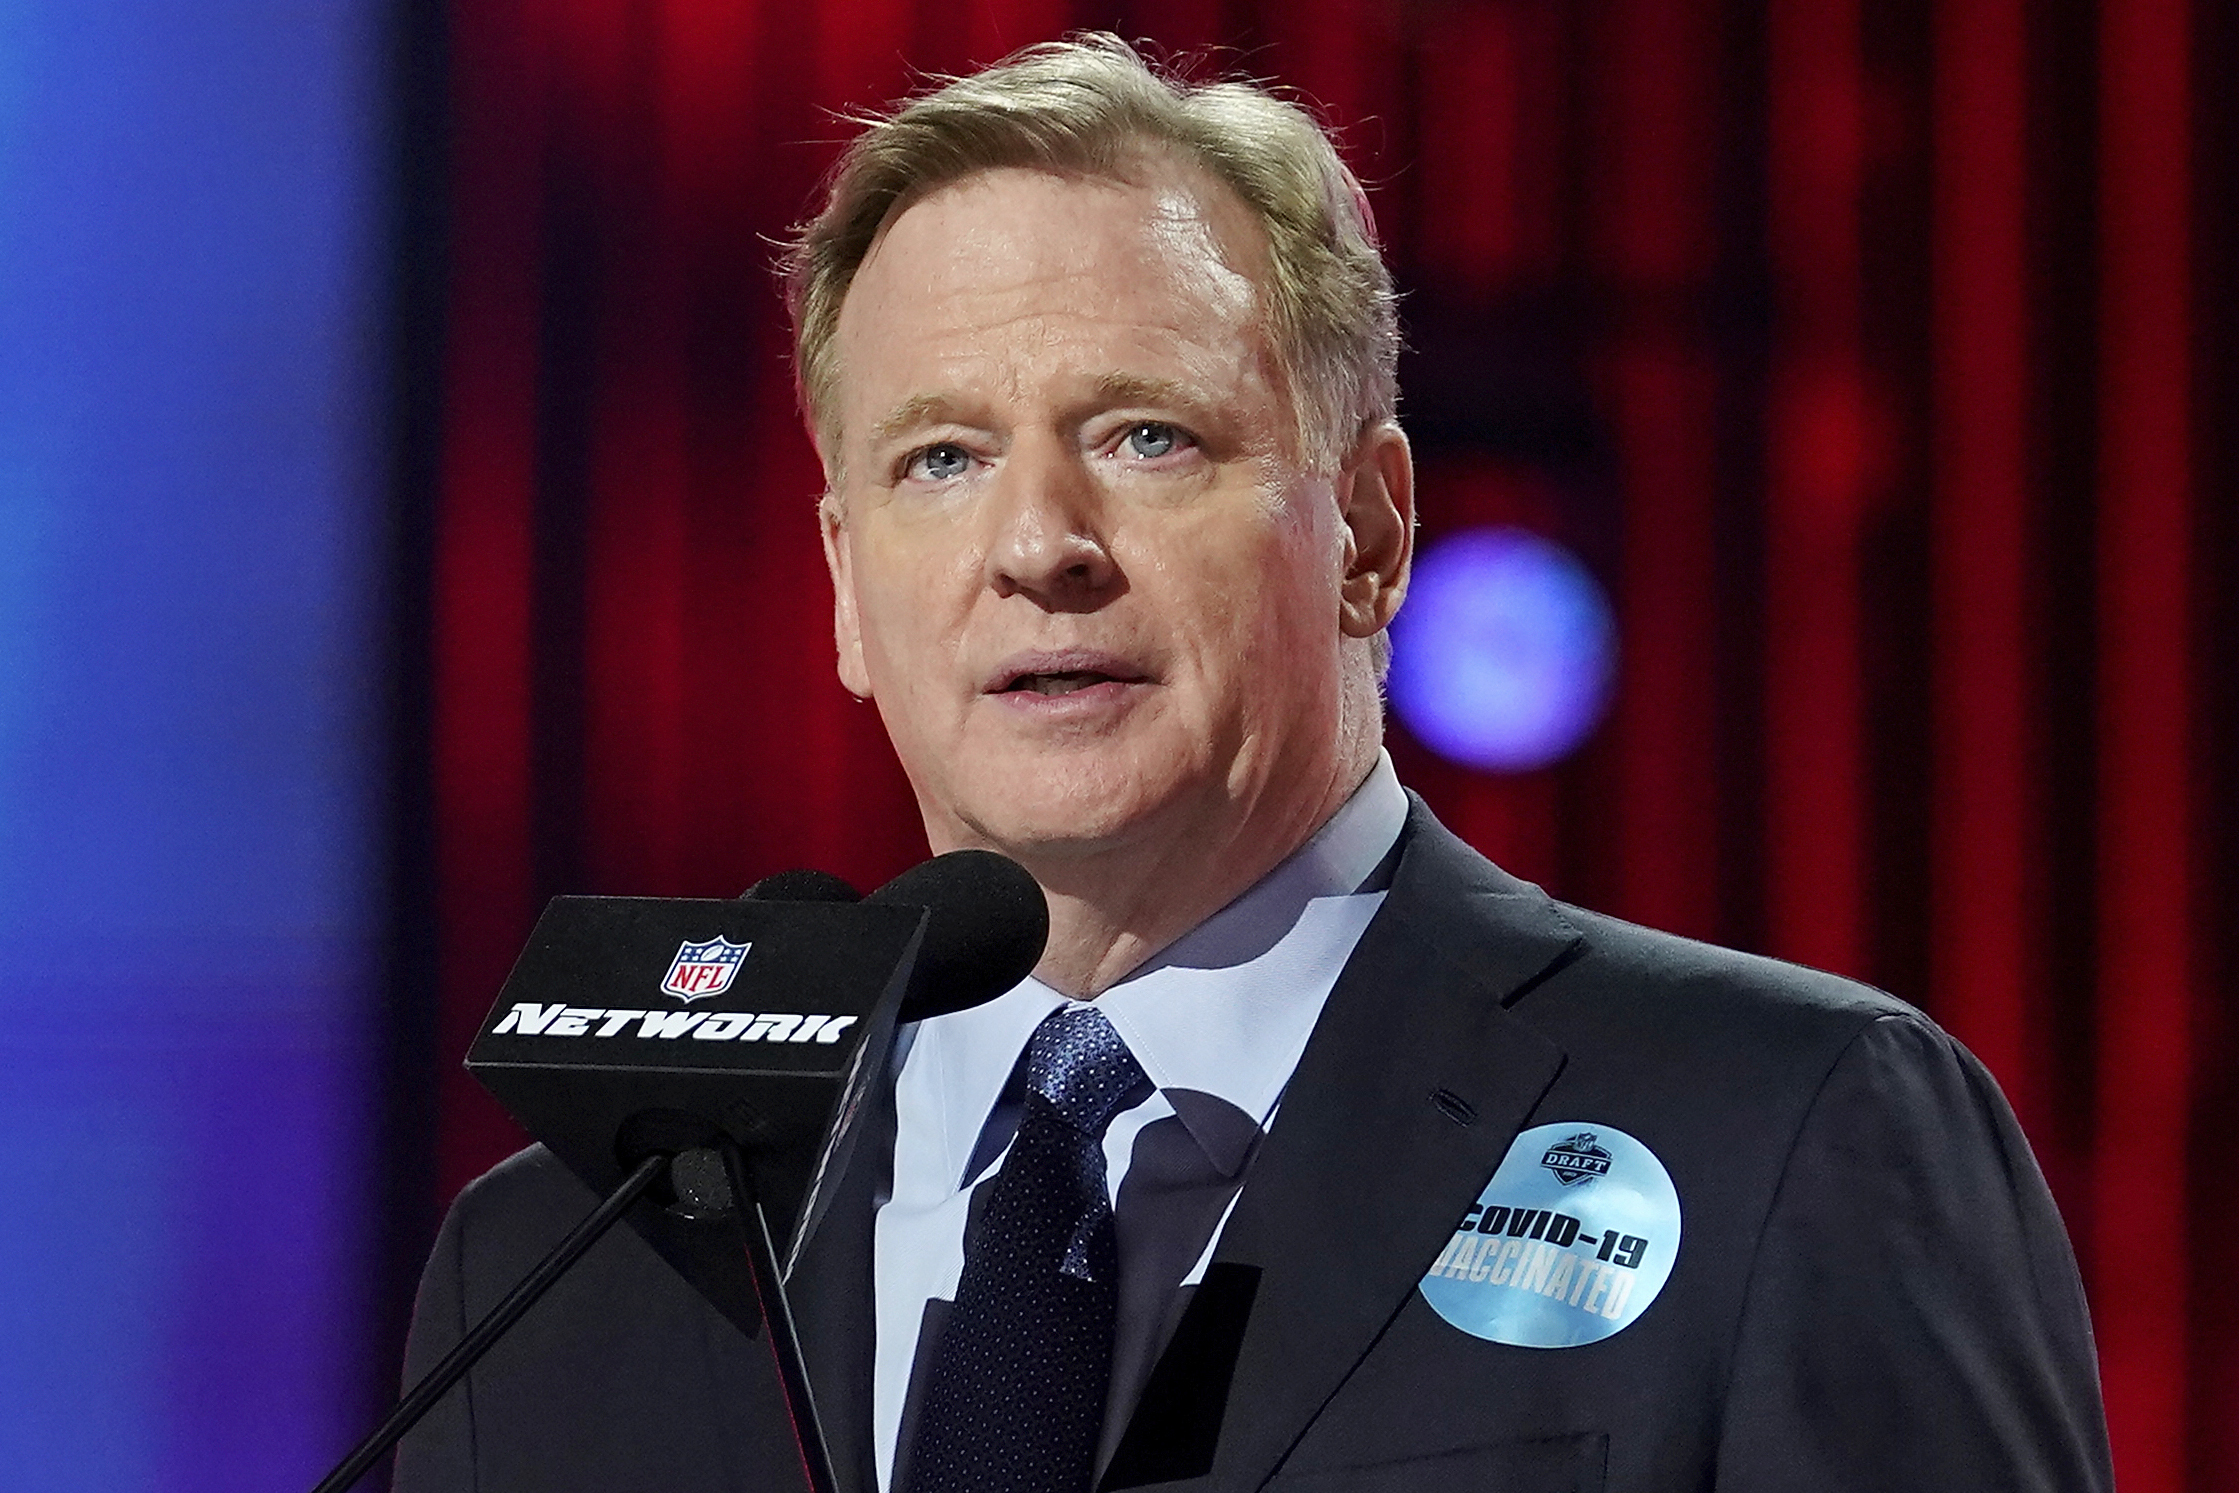 NFL Announces Monday Night Playoff Game During Super Wild Card Weekend